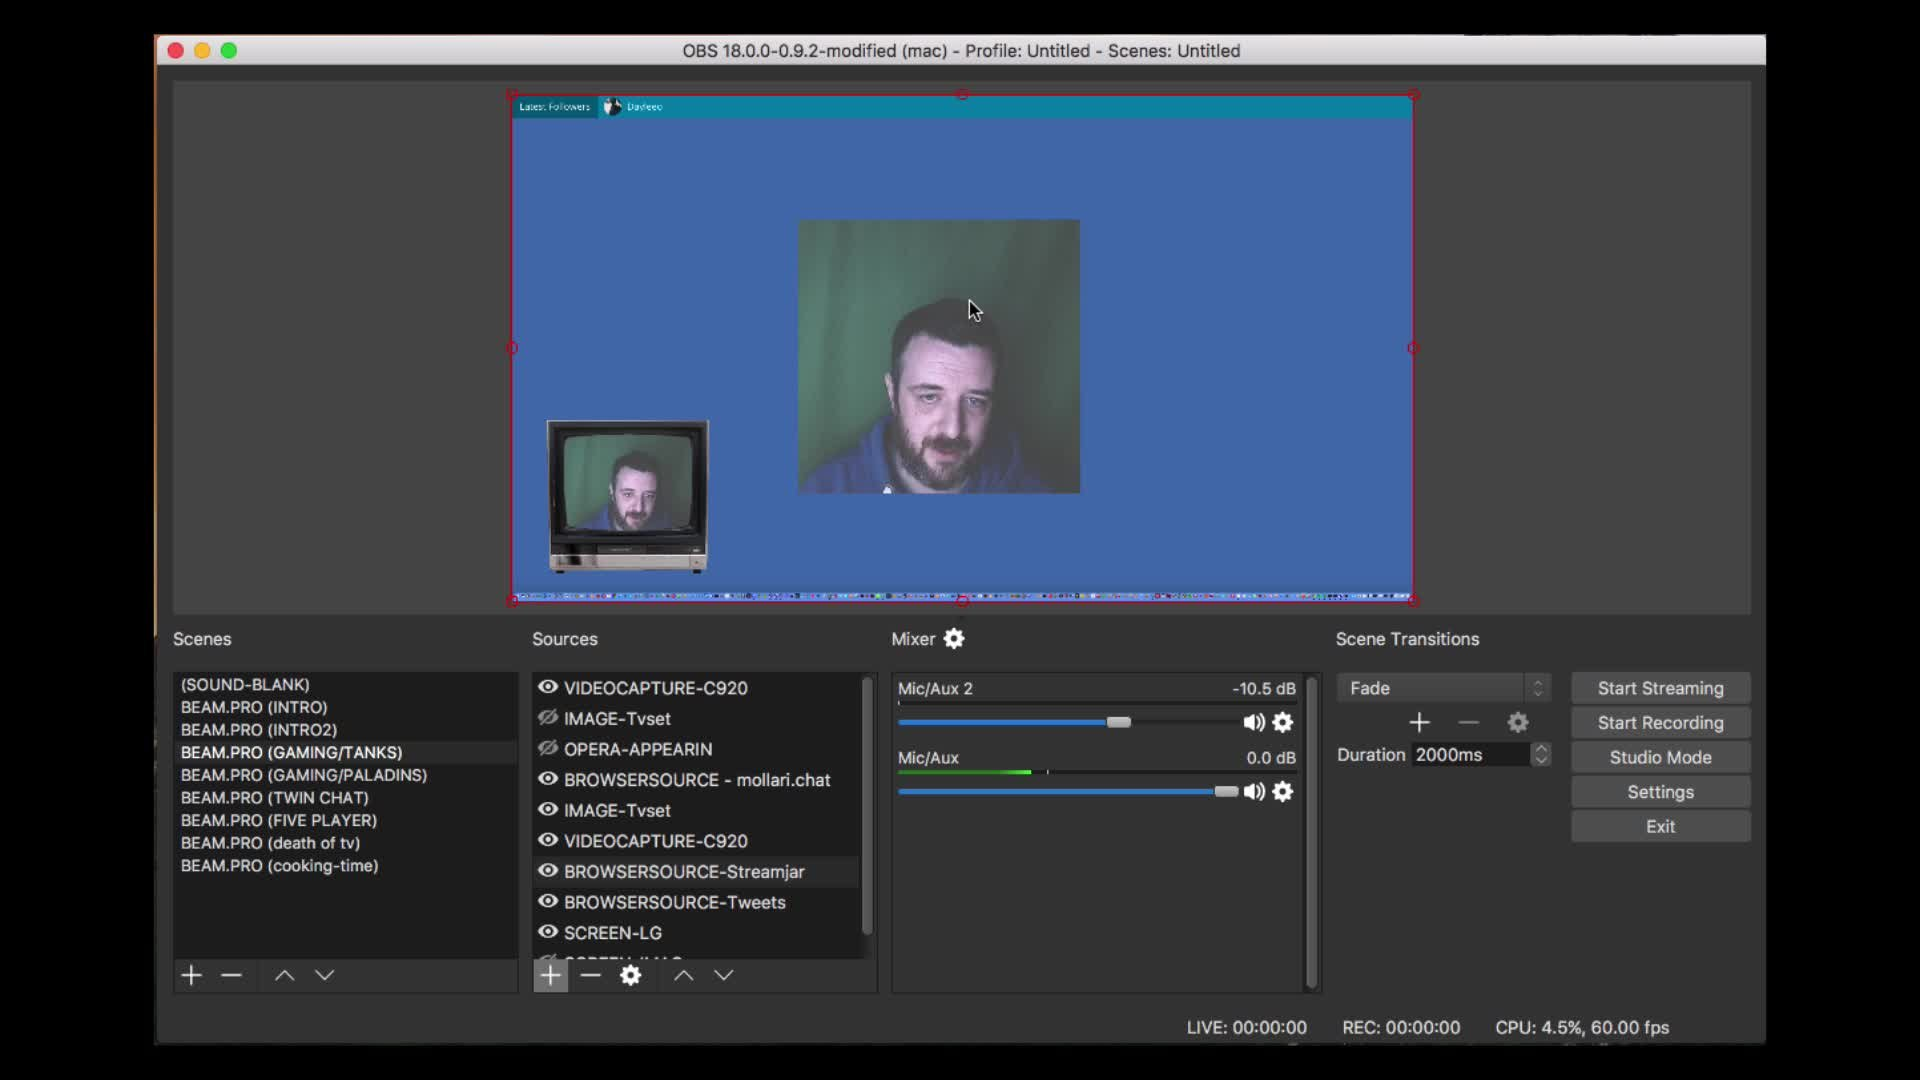 Setting up for Live Streaming Video using OBS Studio | Philip 'dm